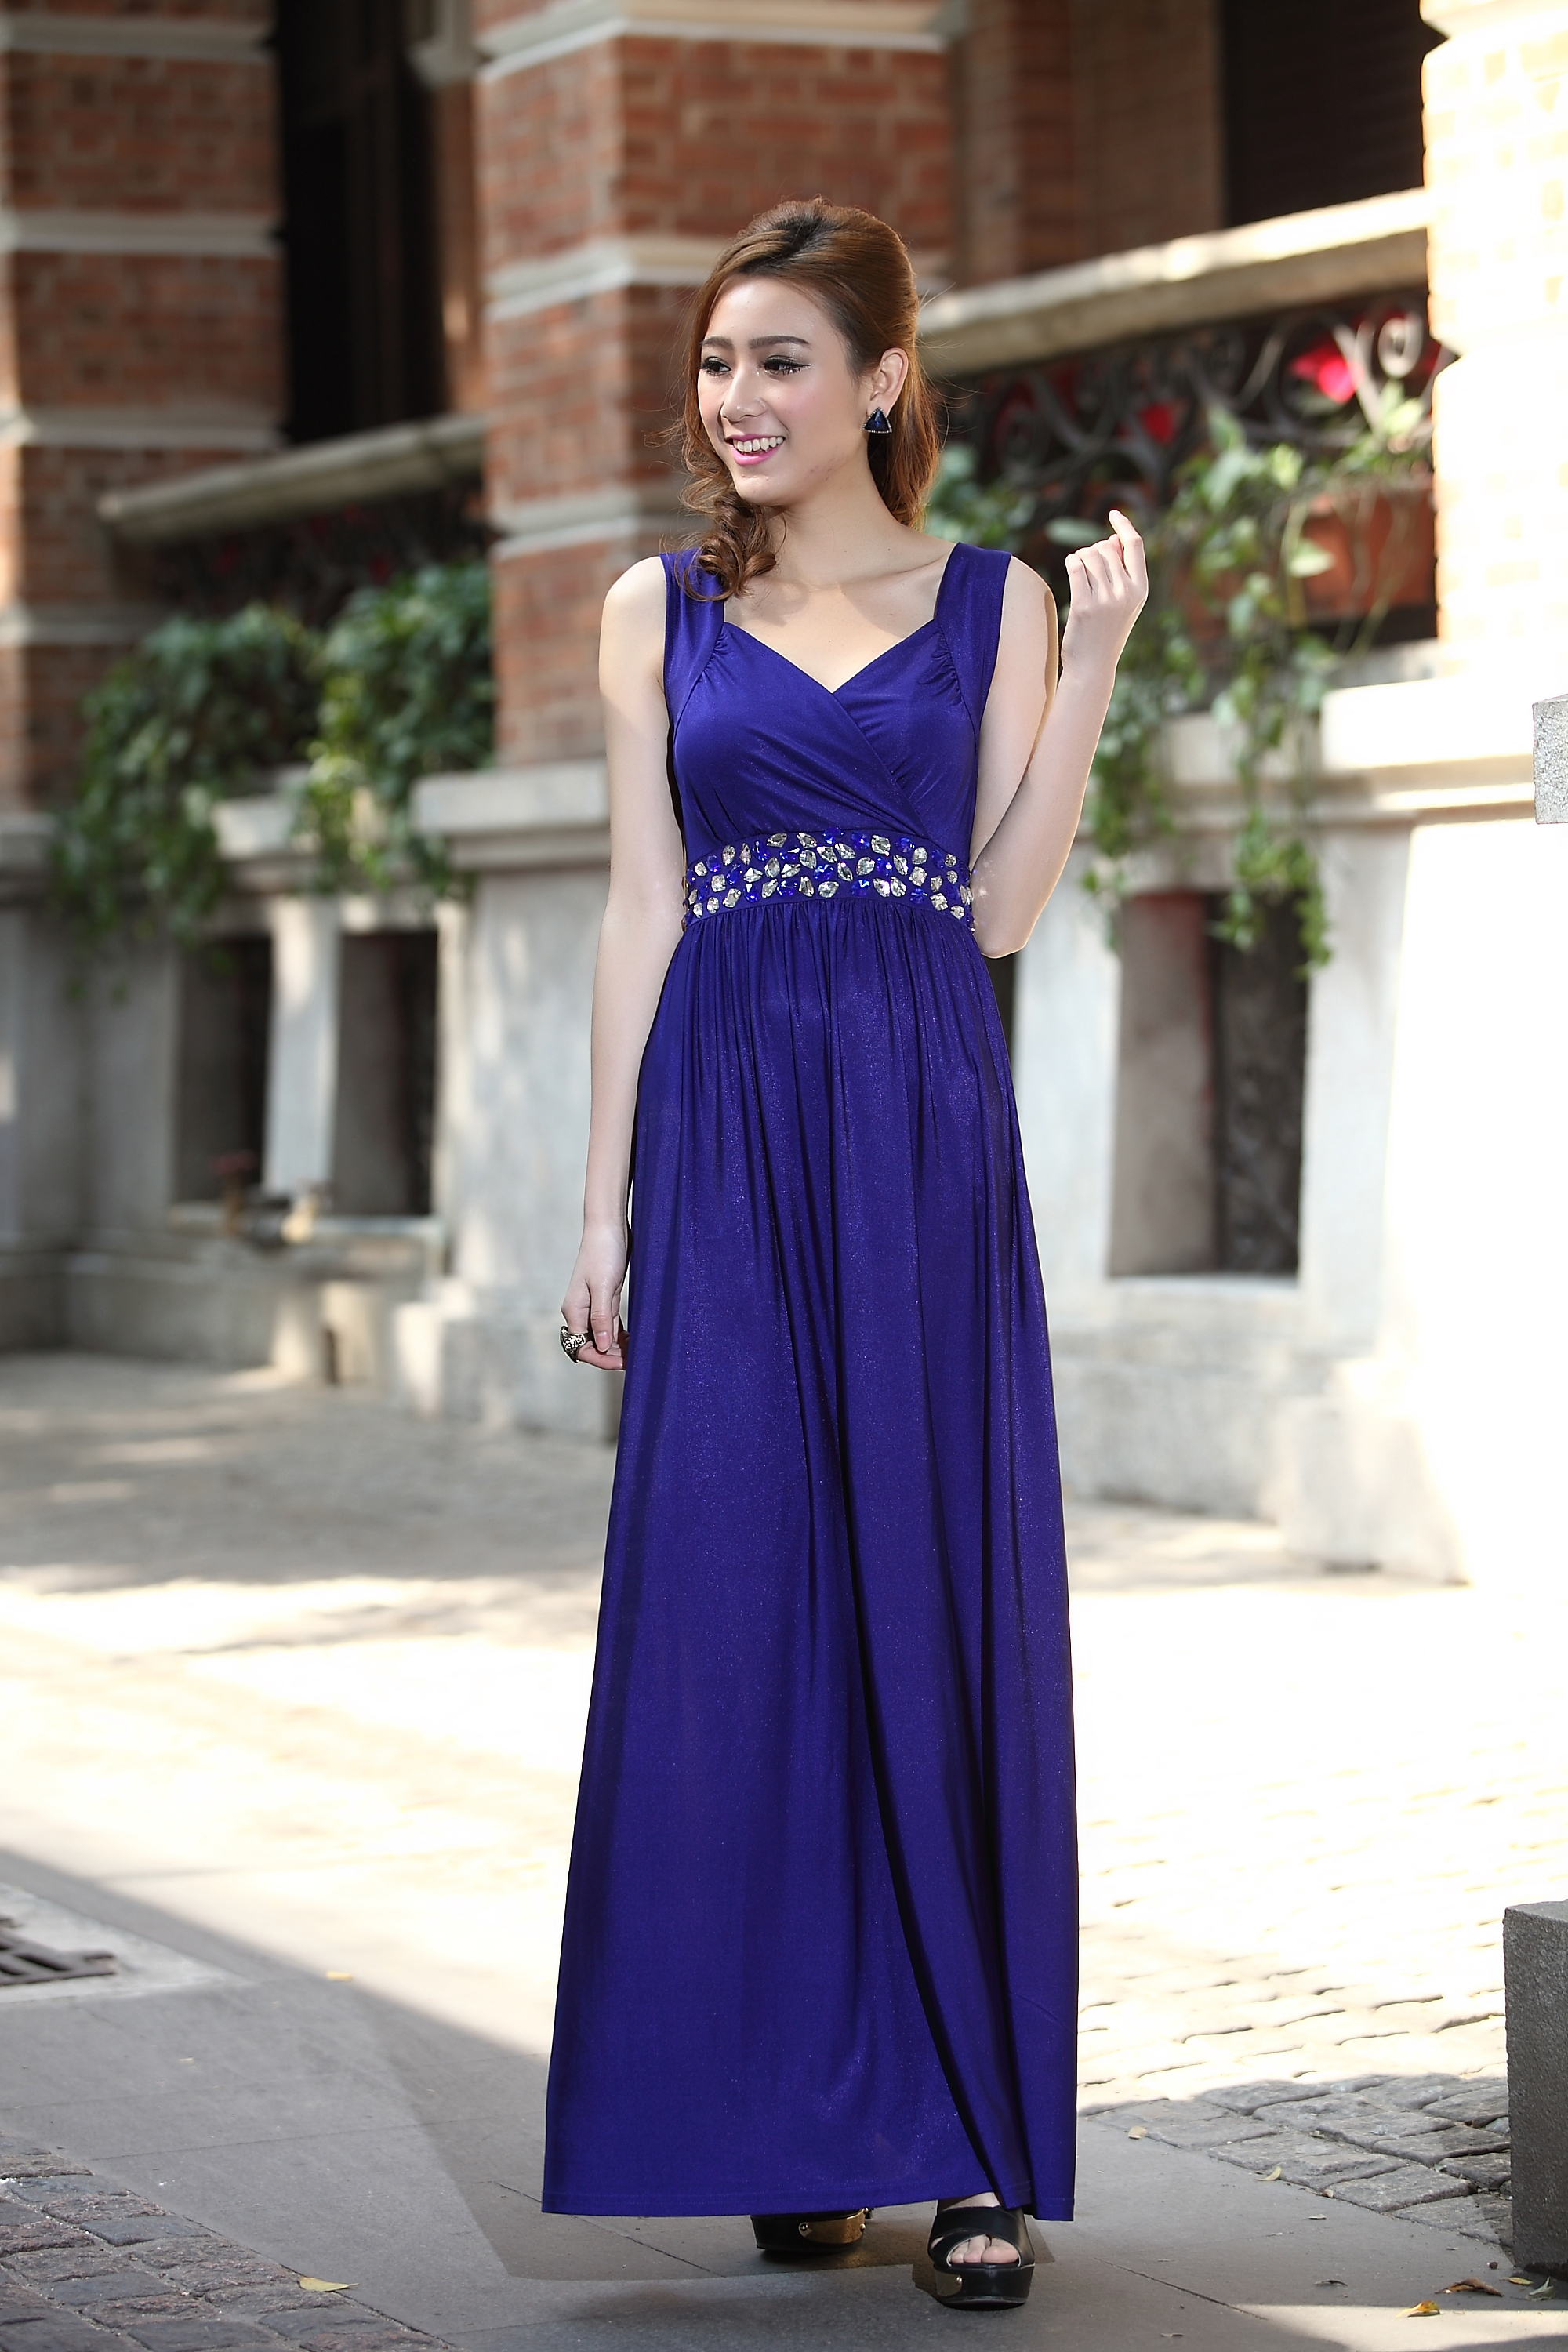 Royal Blue Formal Tail Bead Prom Party Evening Maxi Dress Bridesmaid Gown Plus Sizes Bridesmaids Ball Gowns